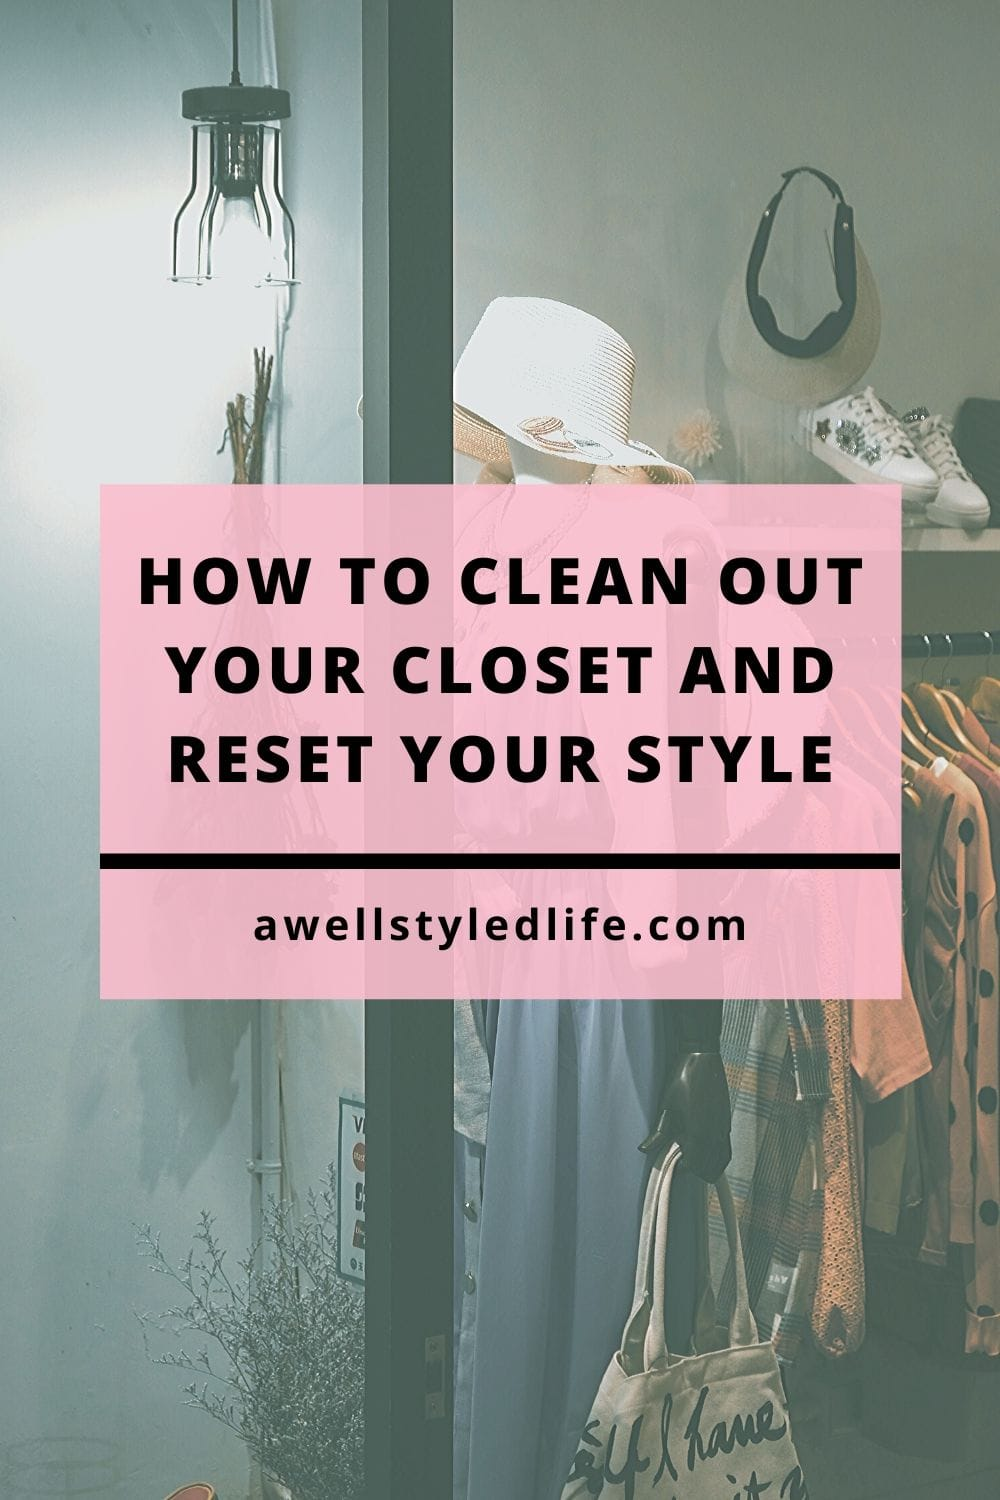 how to clean out your closet and reset your style